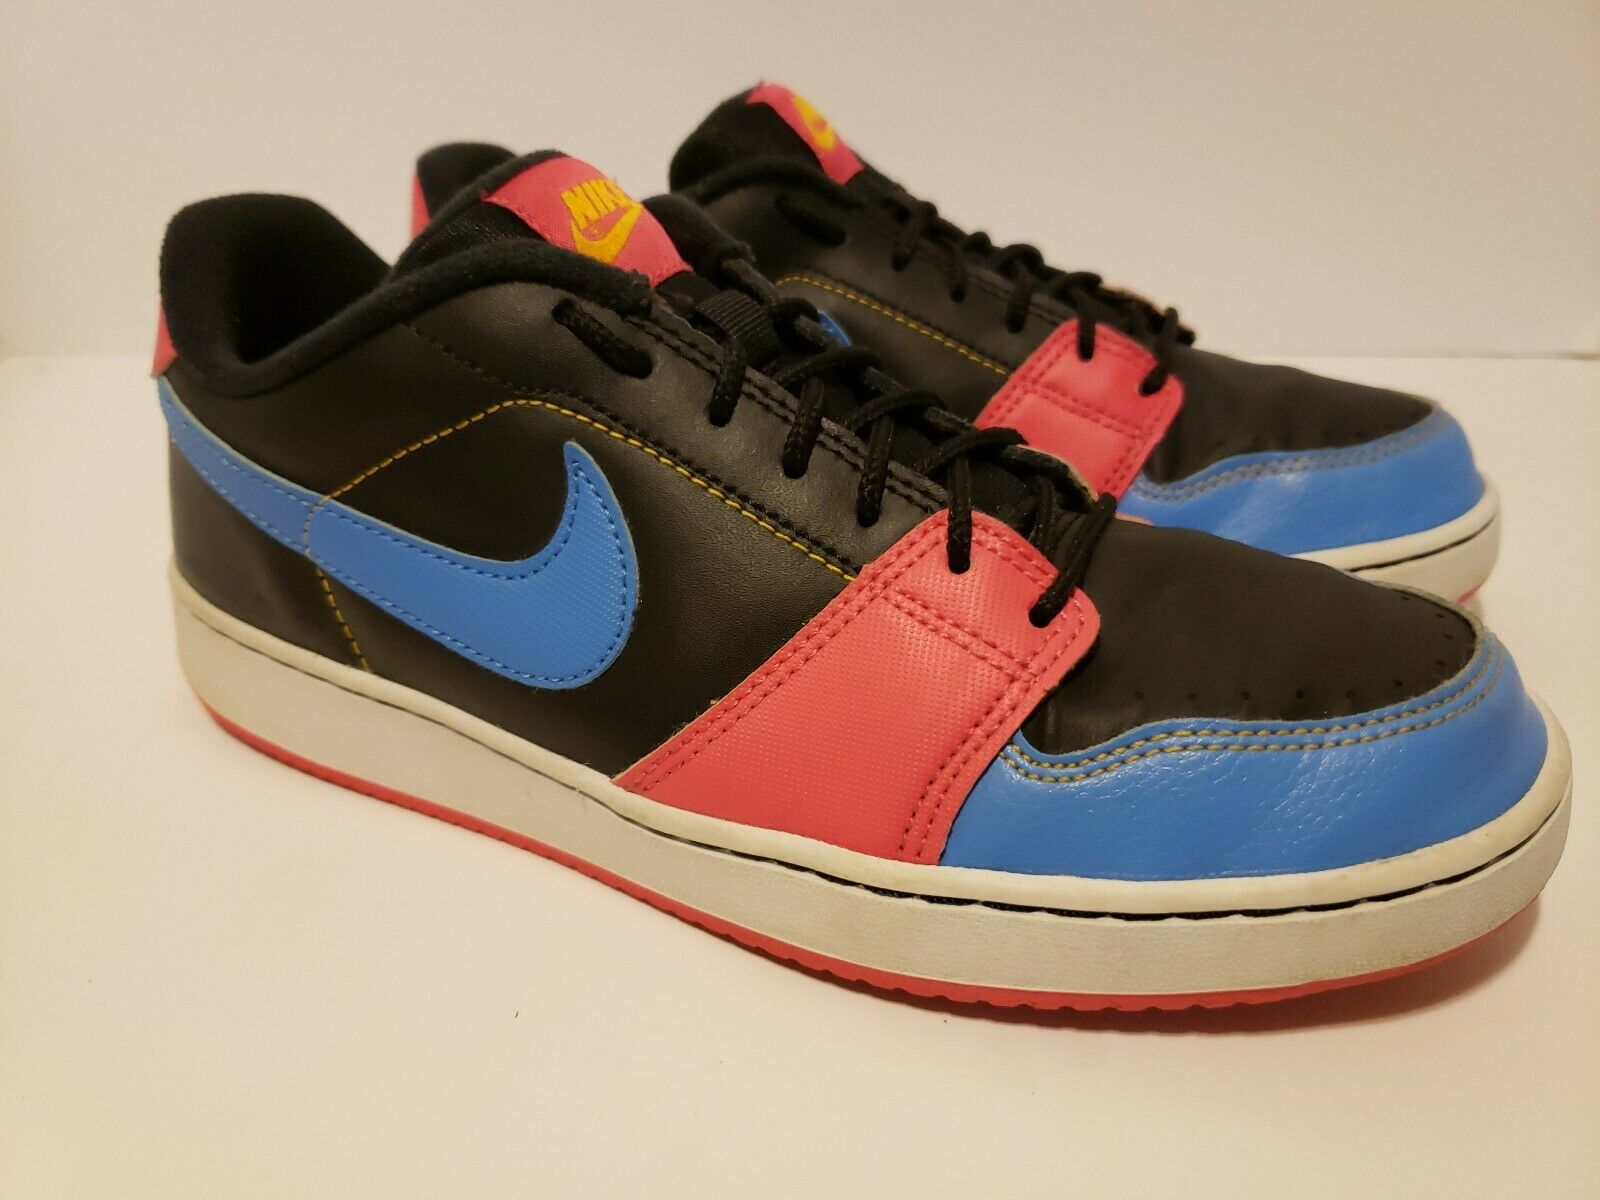 Nike SB Dunk Low Backboard Womens Size 8.5 Black bluee Pink Leather 386110-016